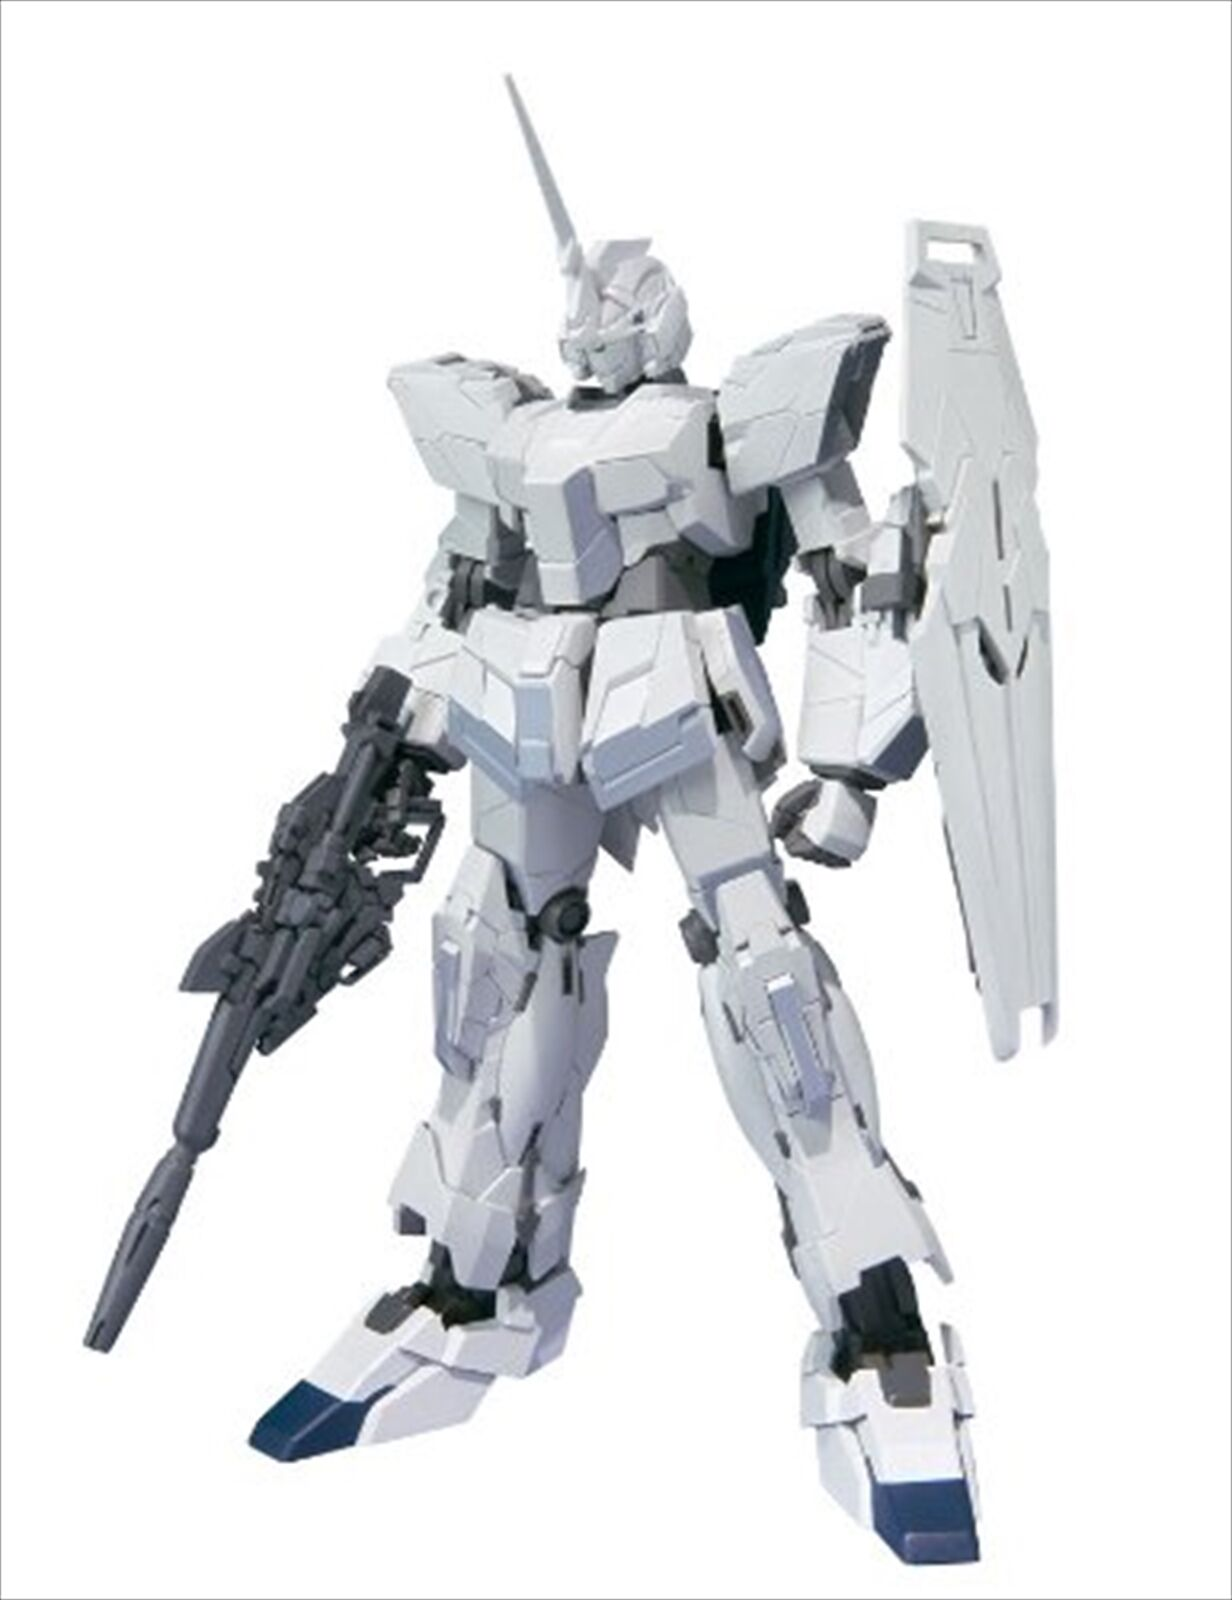 Bandai Robot Spirits SIDE MS Unicorn Gundam Unicorn mode Action Figure